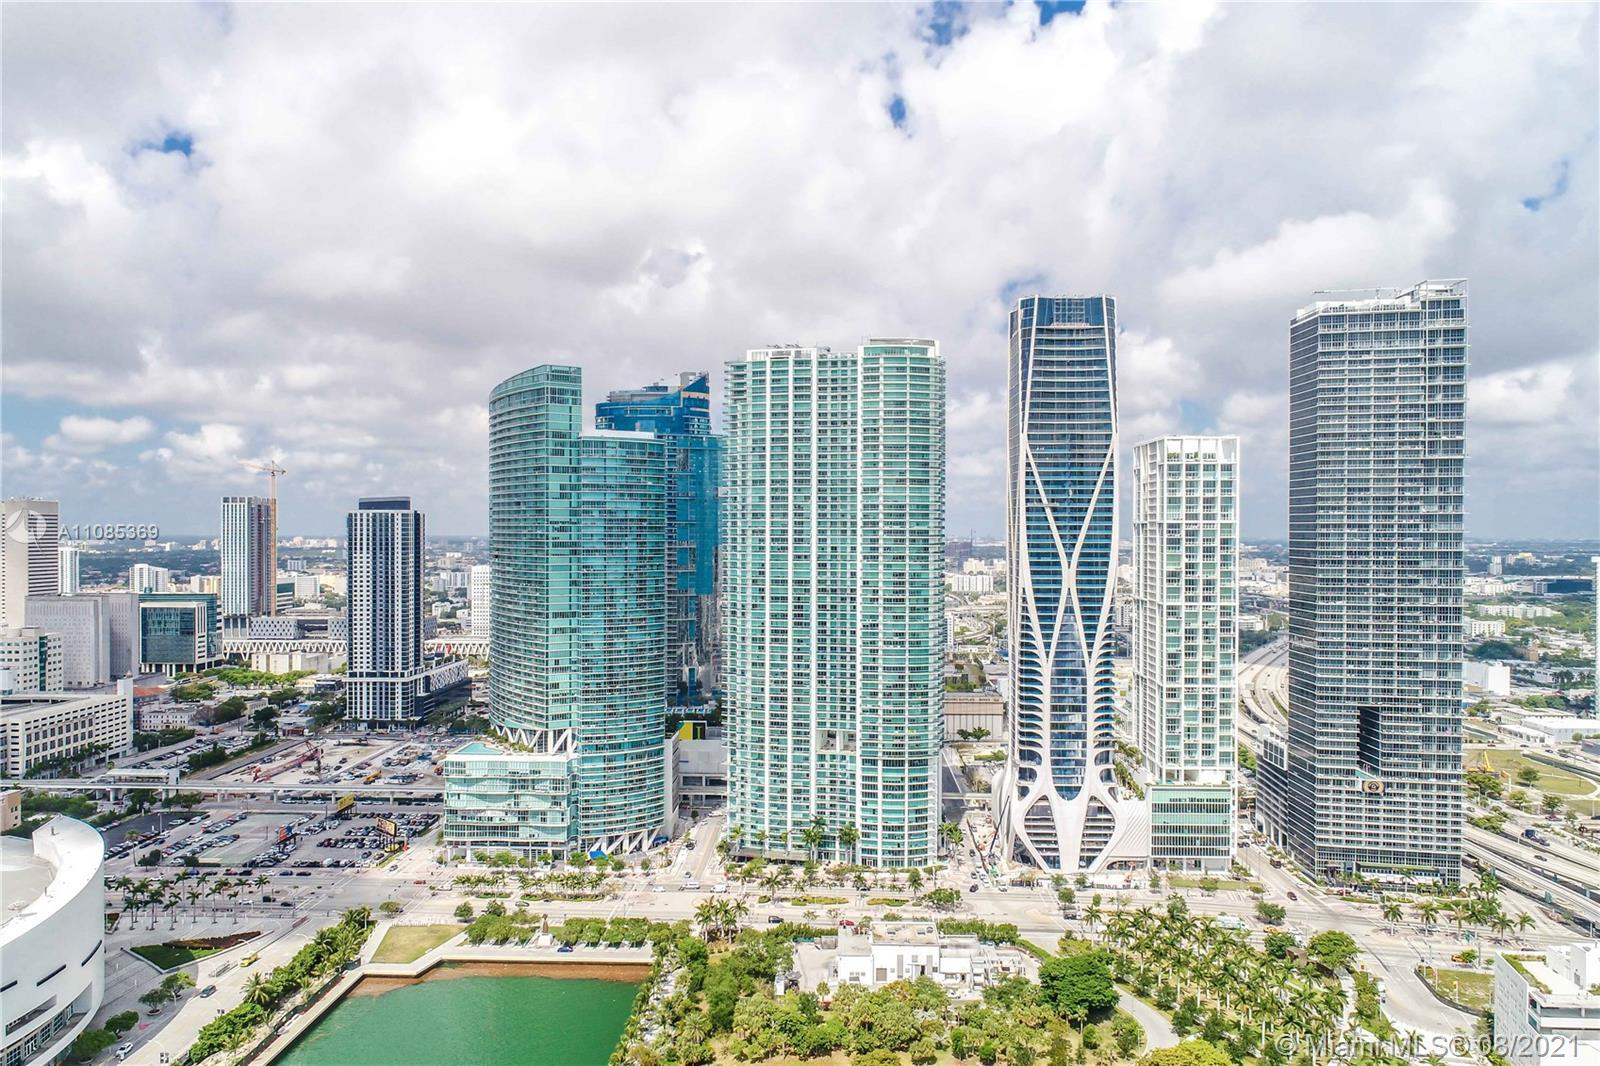 This beautiful 50th floor suite, located in the luxury high rise 900 Biscayne has breathtaking views